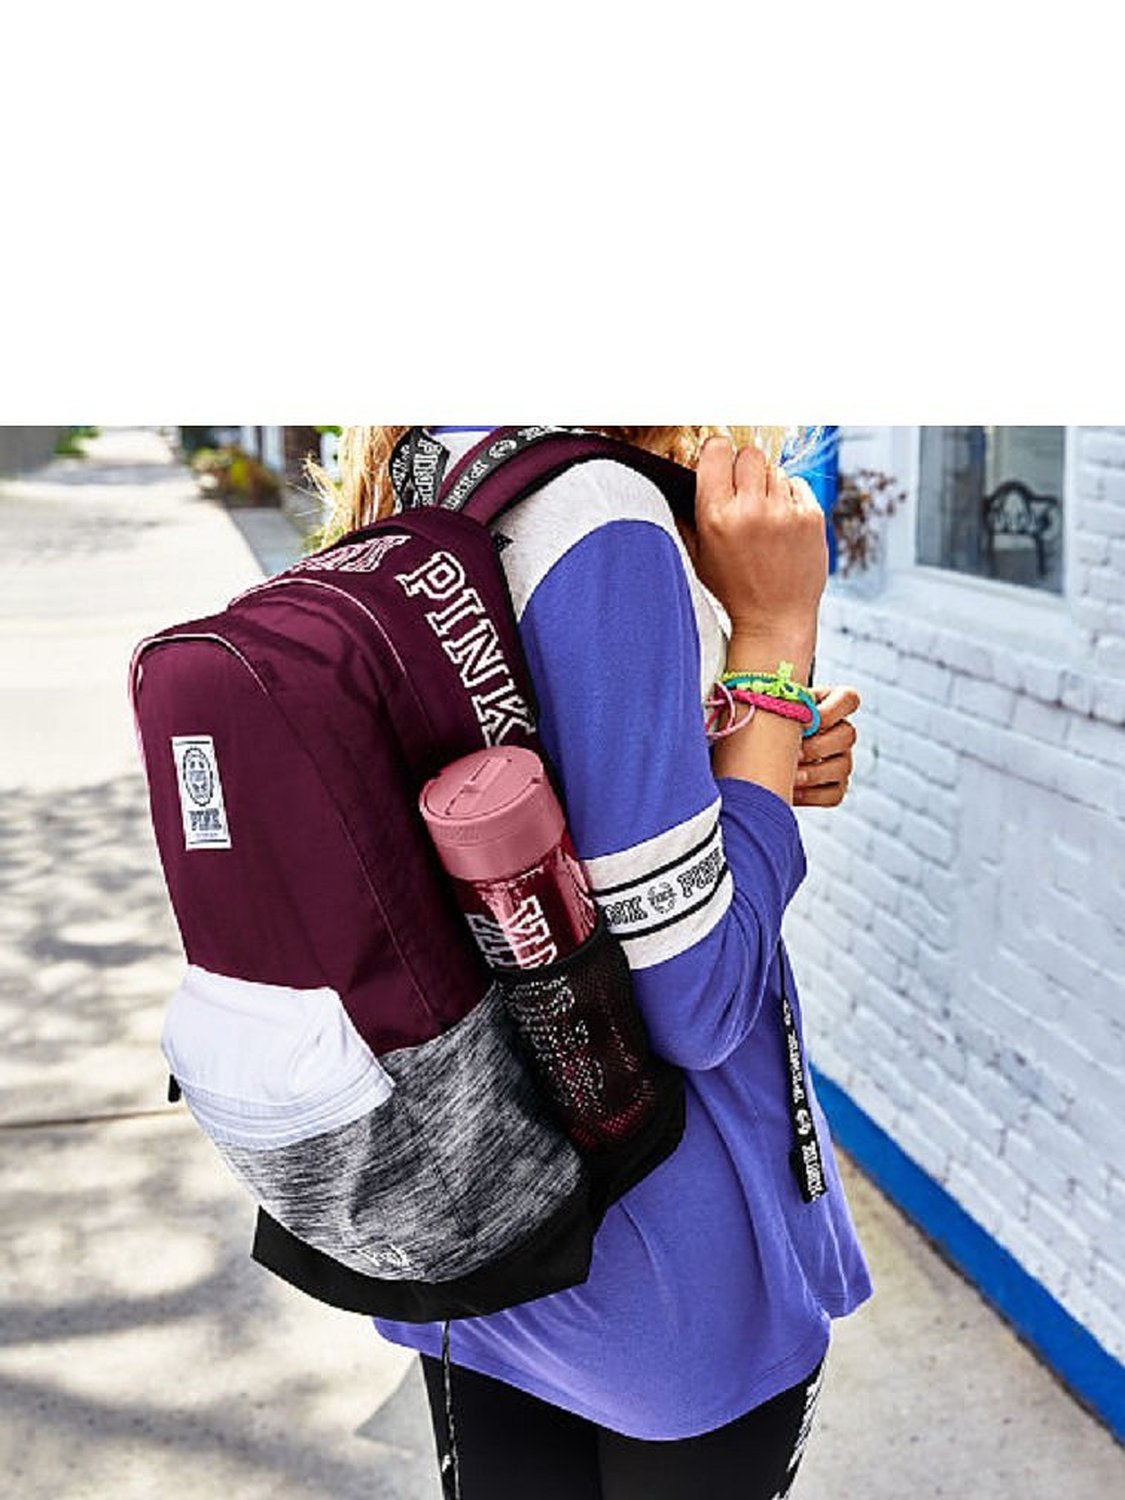 96e2dbbe1fa Victoria s Secret Pink Campus Backpack - Walmart.com